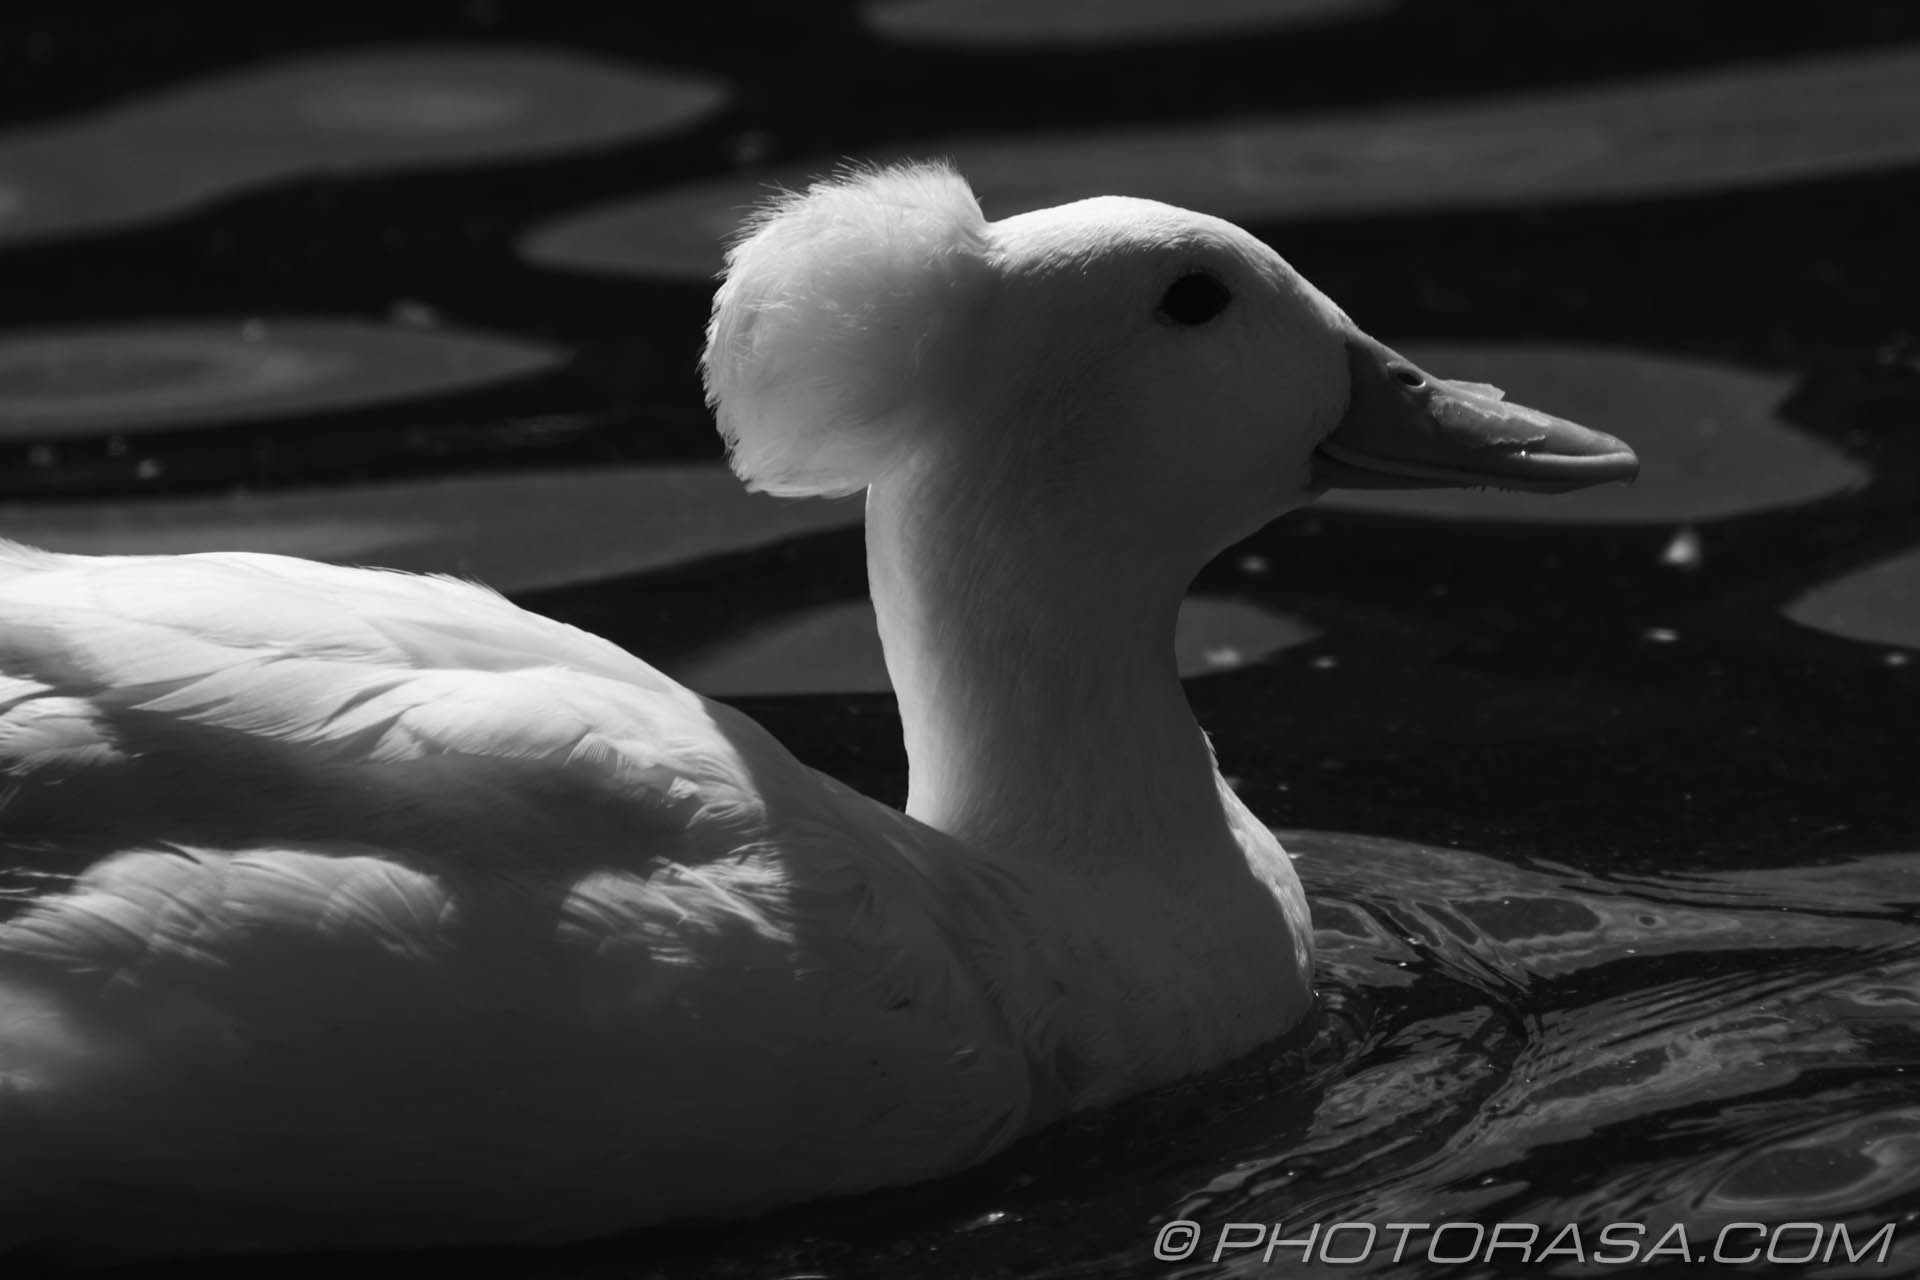 https://photorasa.com/birds-greenworld/white-crested-duck-swimming-in-black-and-white/